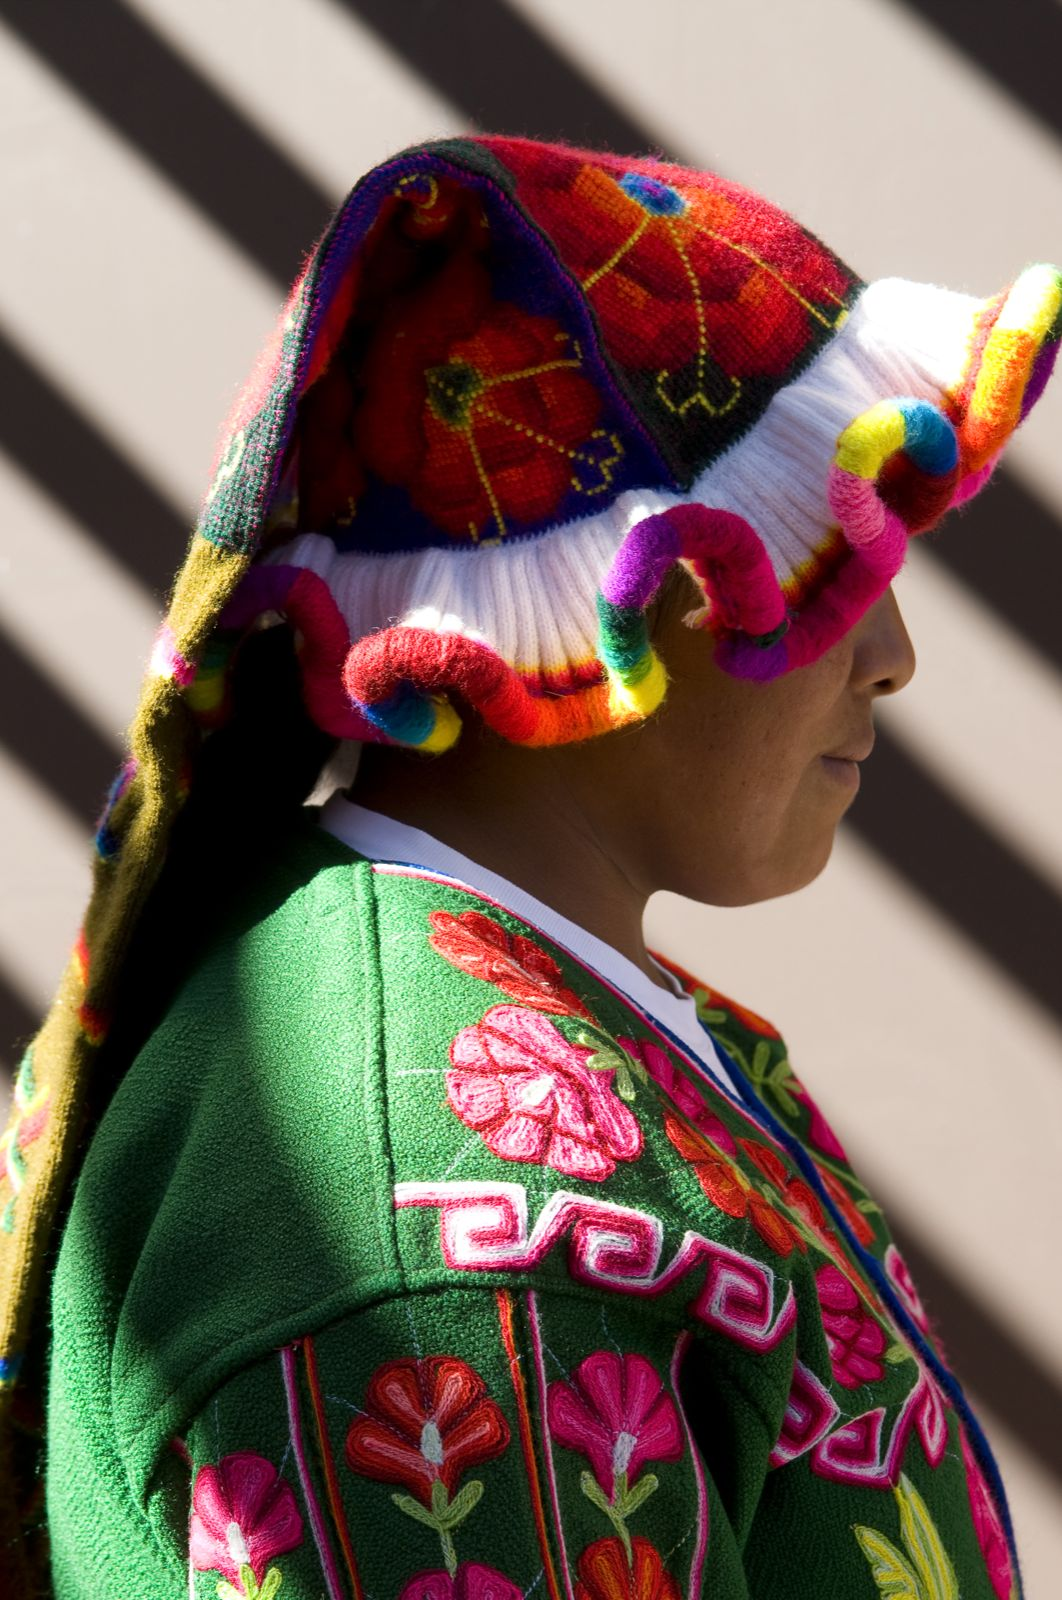 Peruvian woman standing, dressed in colorful woven clothes